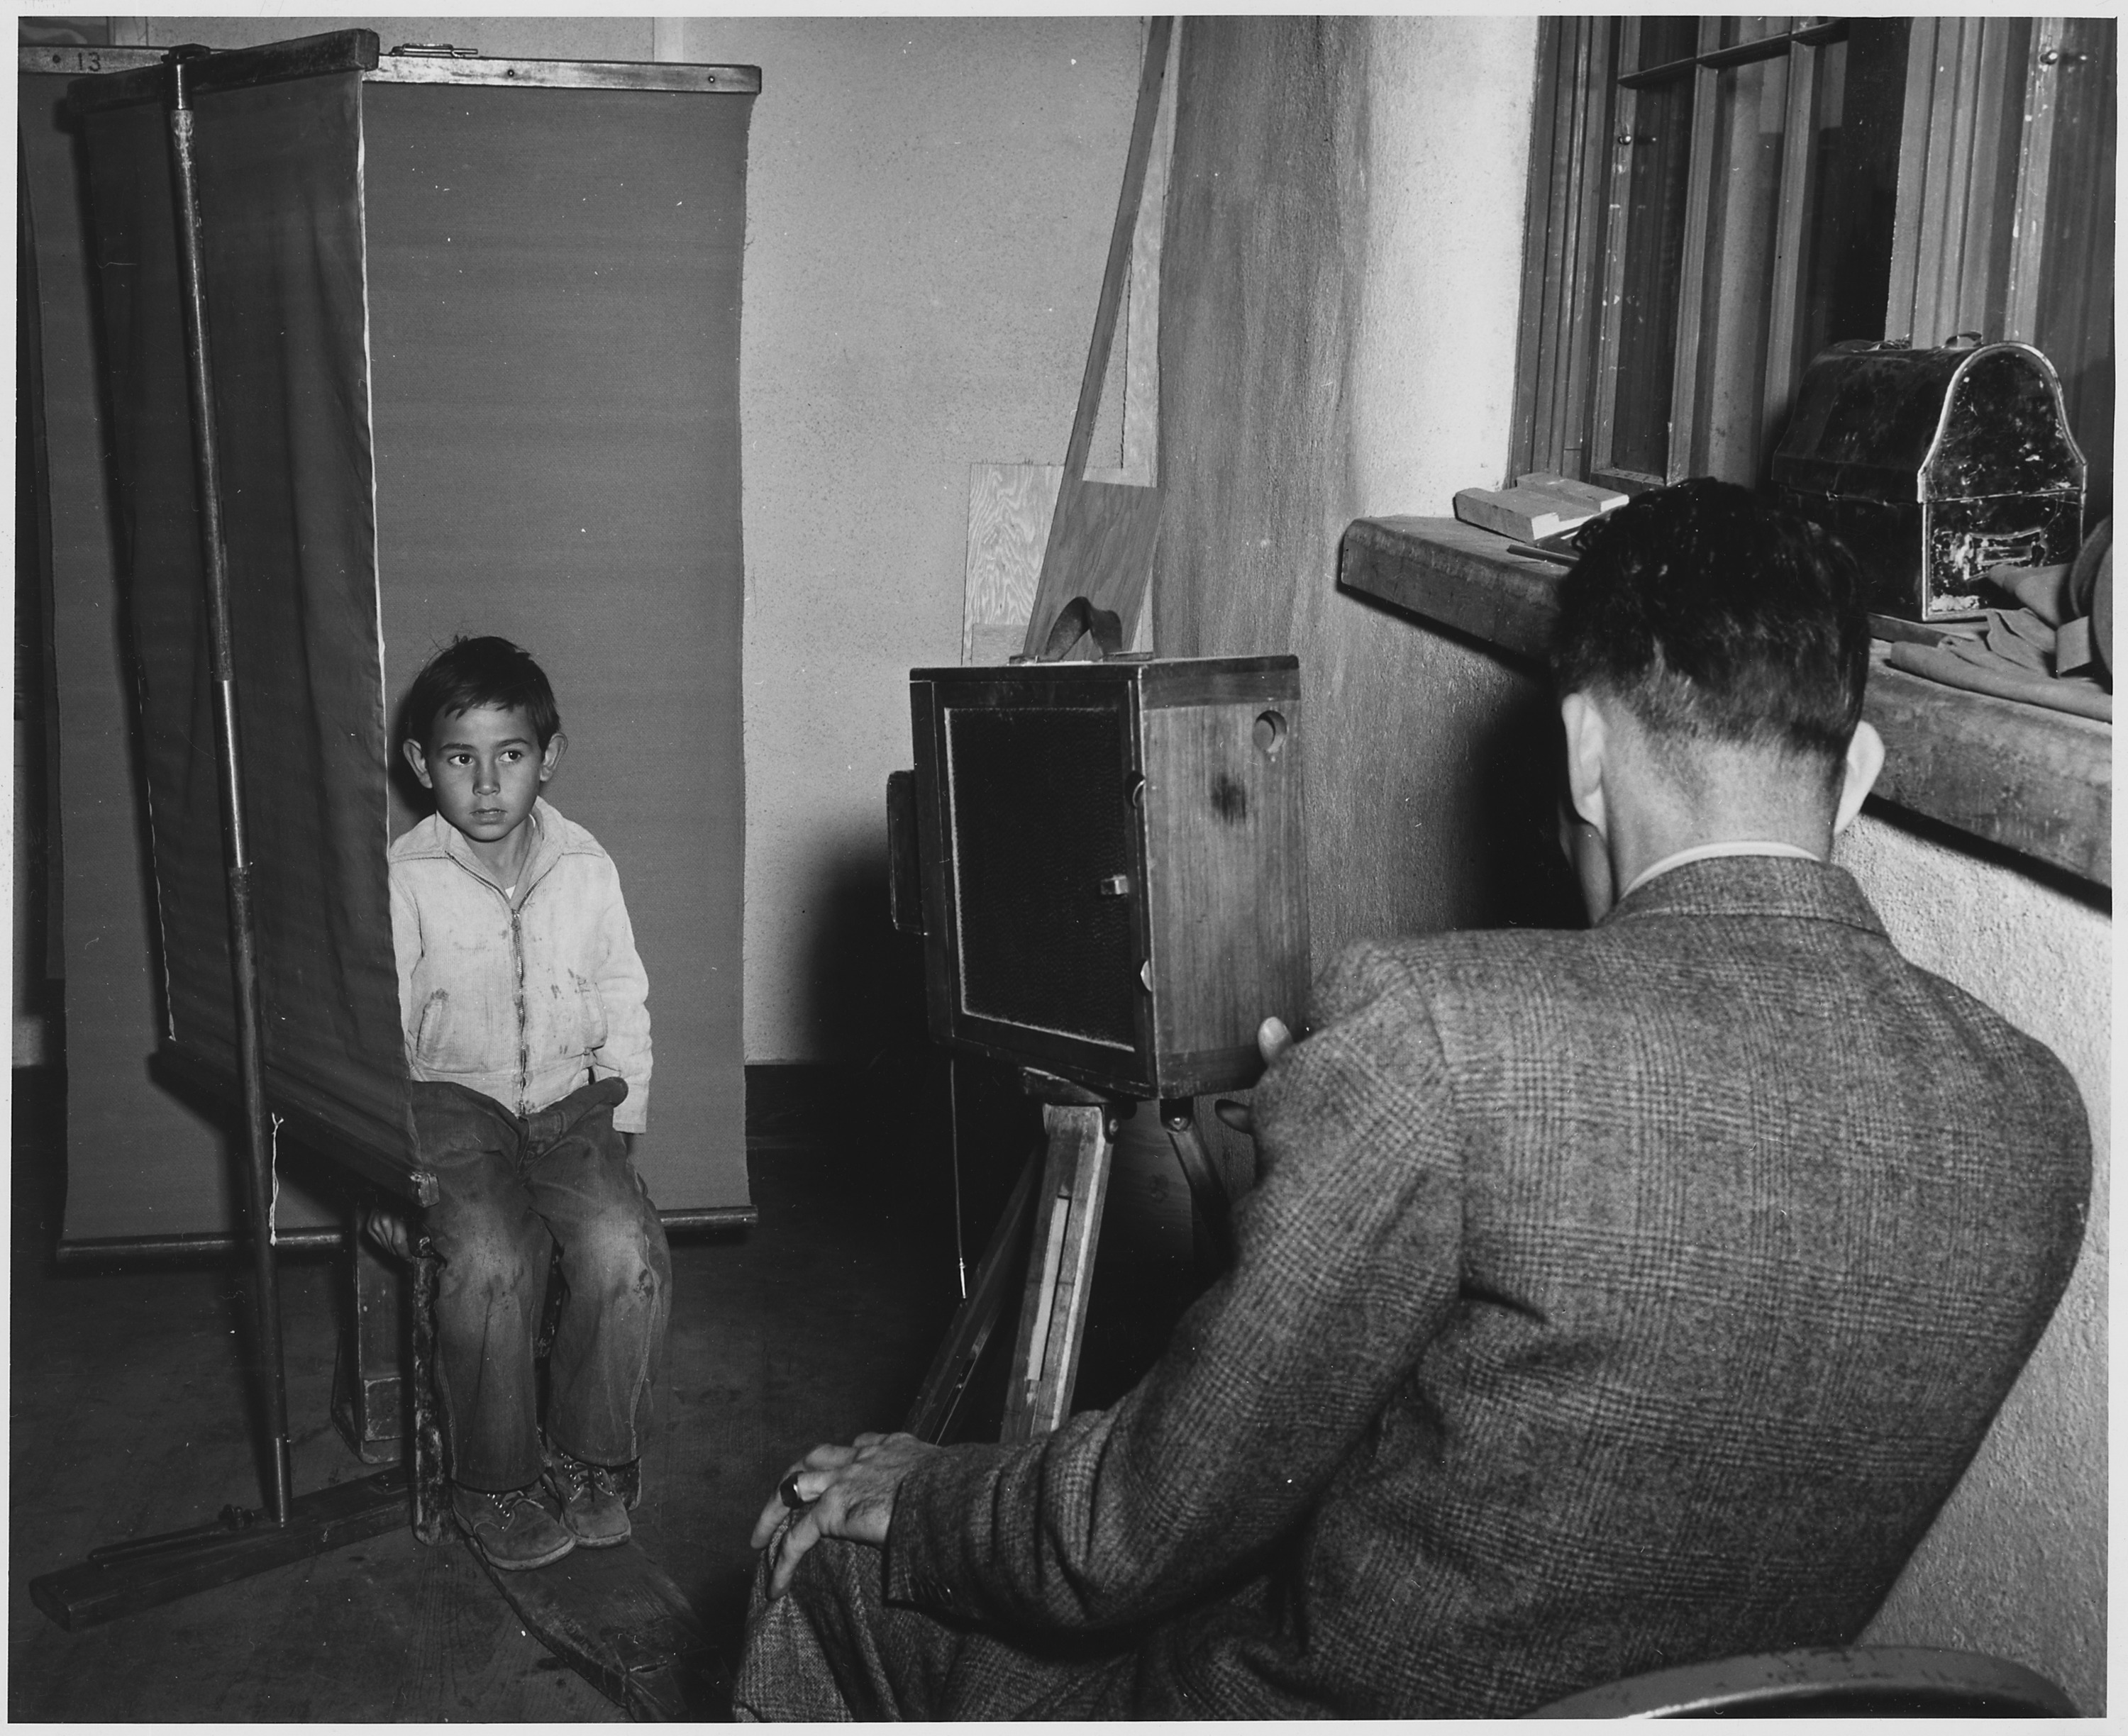 Black and white photograph of boy wearing a light colored jacket and worn out blue jeans, is seated for a photograph in front of a dark photo backdrop. The photographer, a man in a suit is seen from the back, operating a wood box camera on a tripod. To theright is a window with an old fashioned black metal lunchbox resting on the window sill.